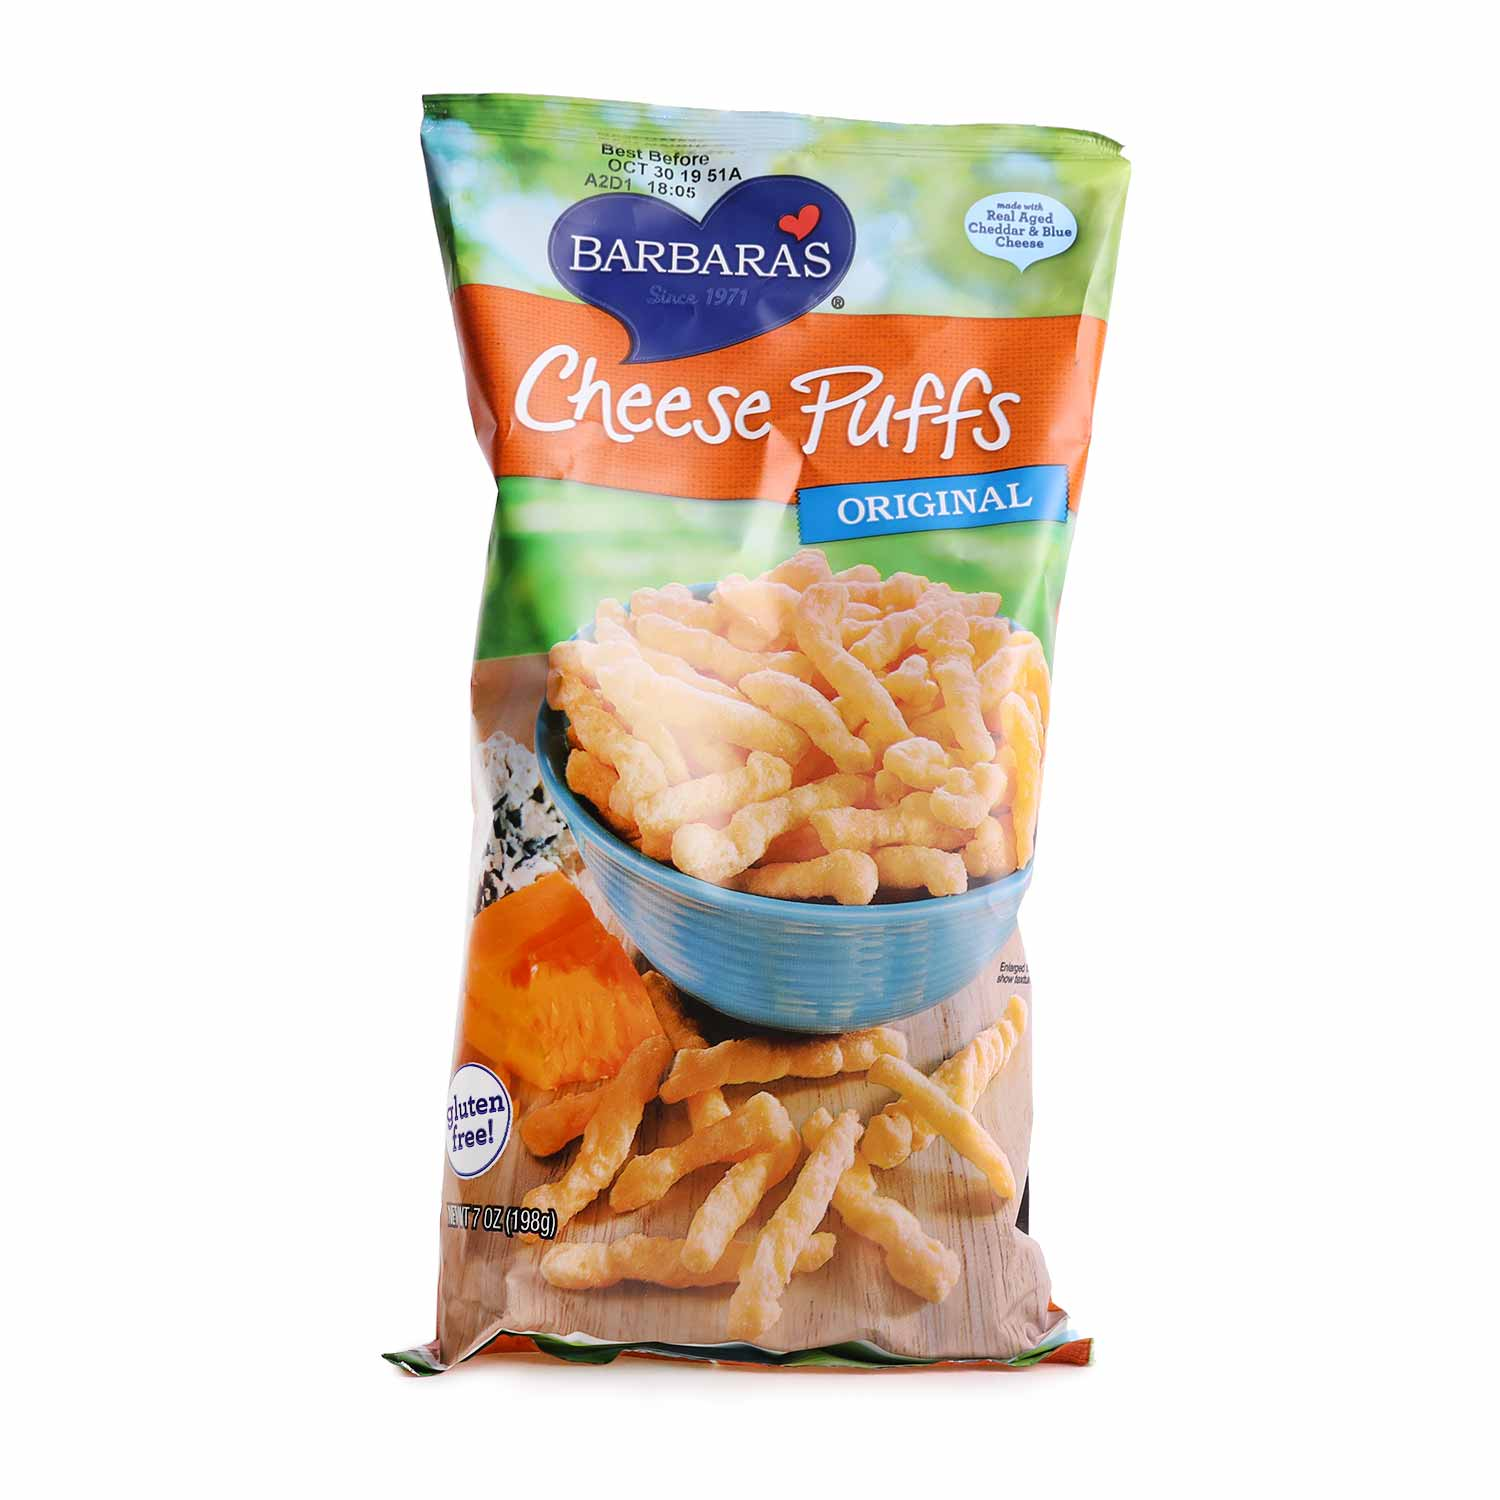 Cheese Puffs, Original